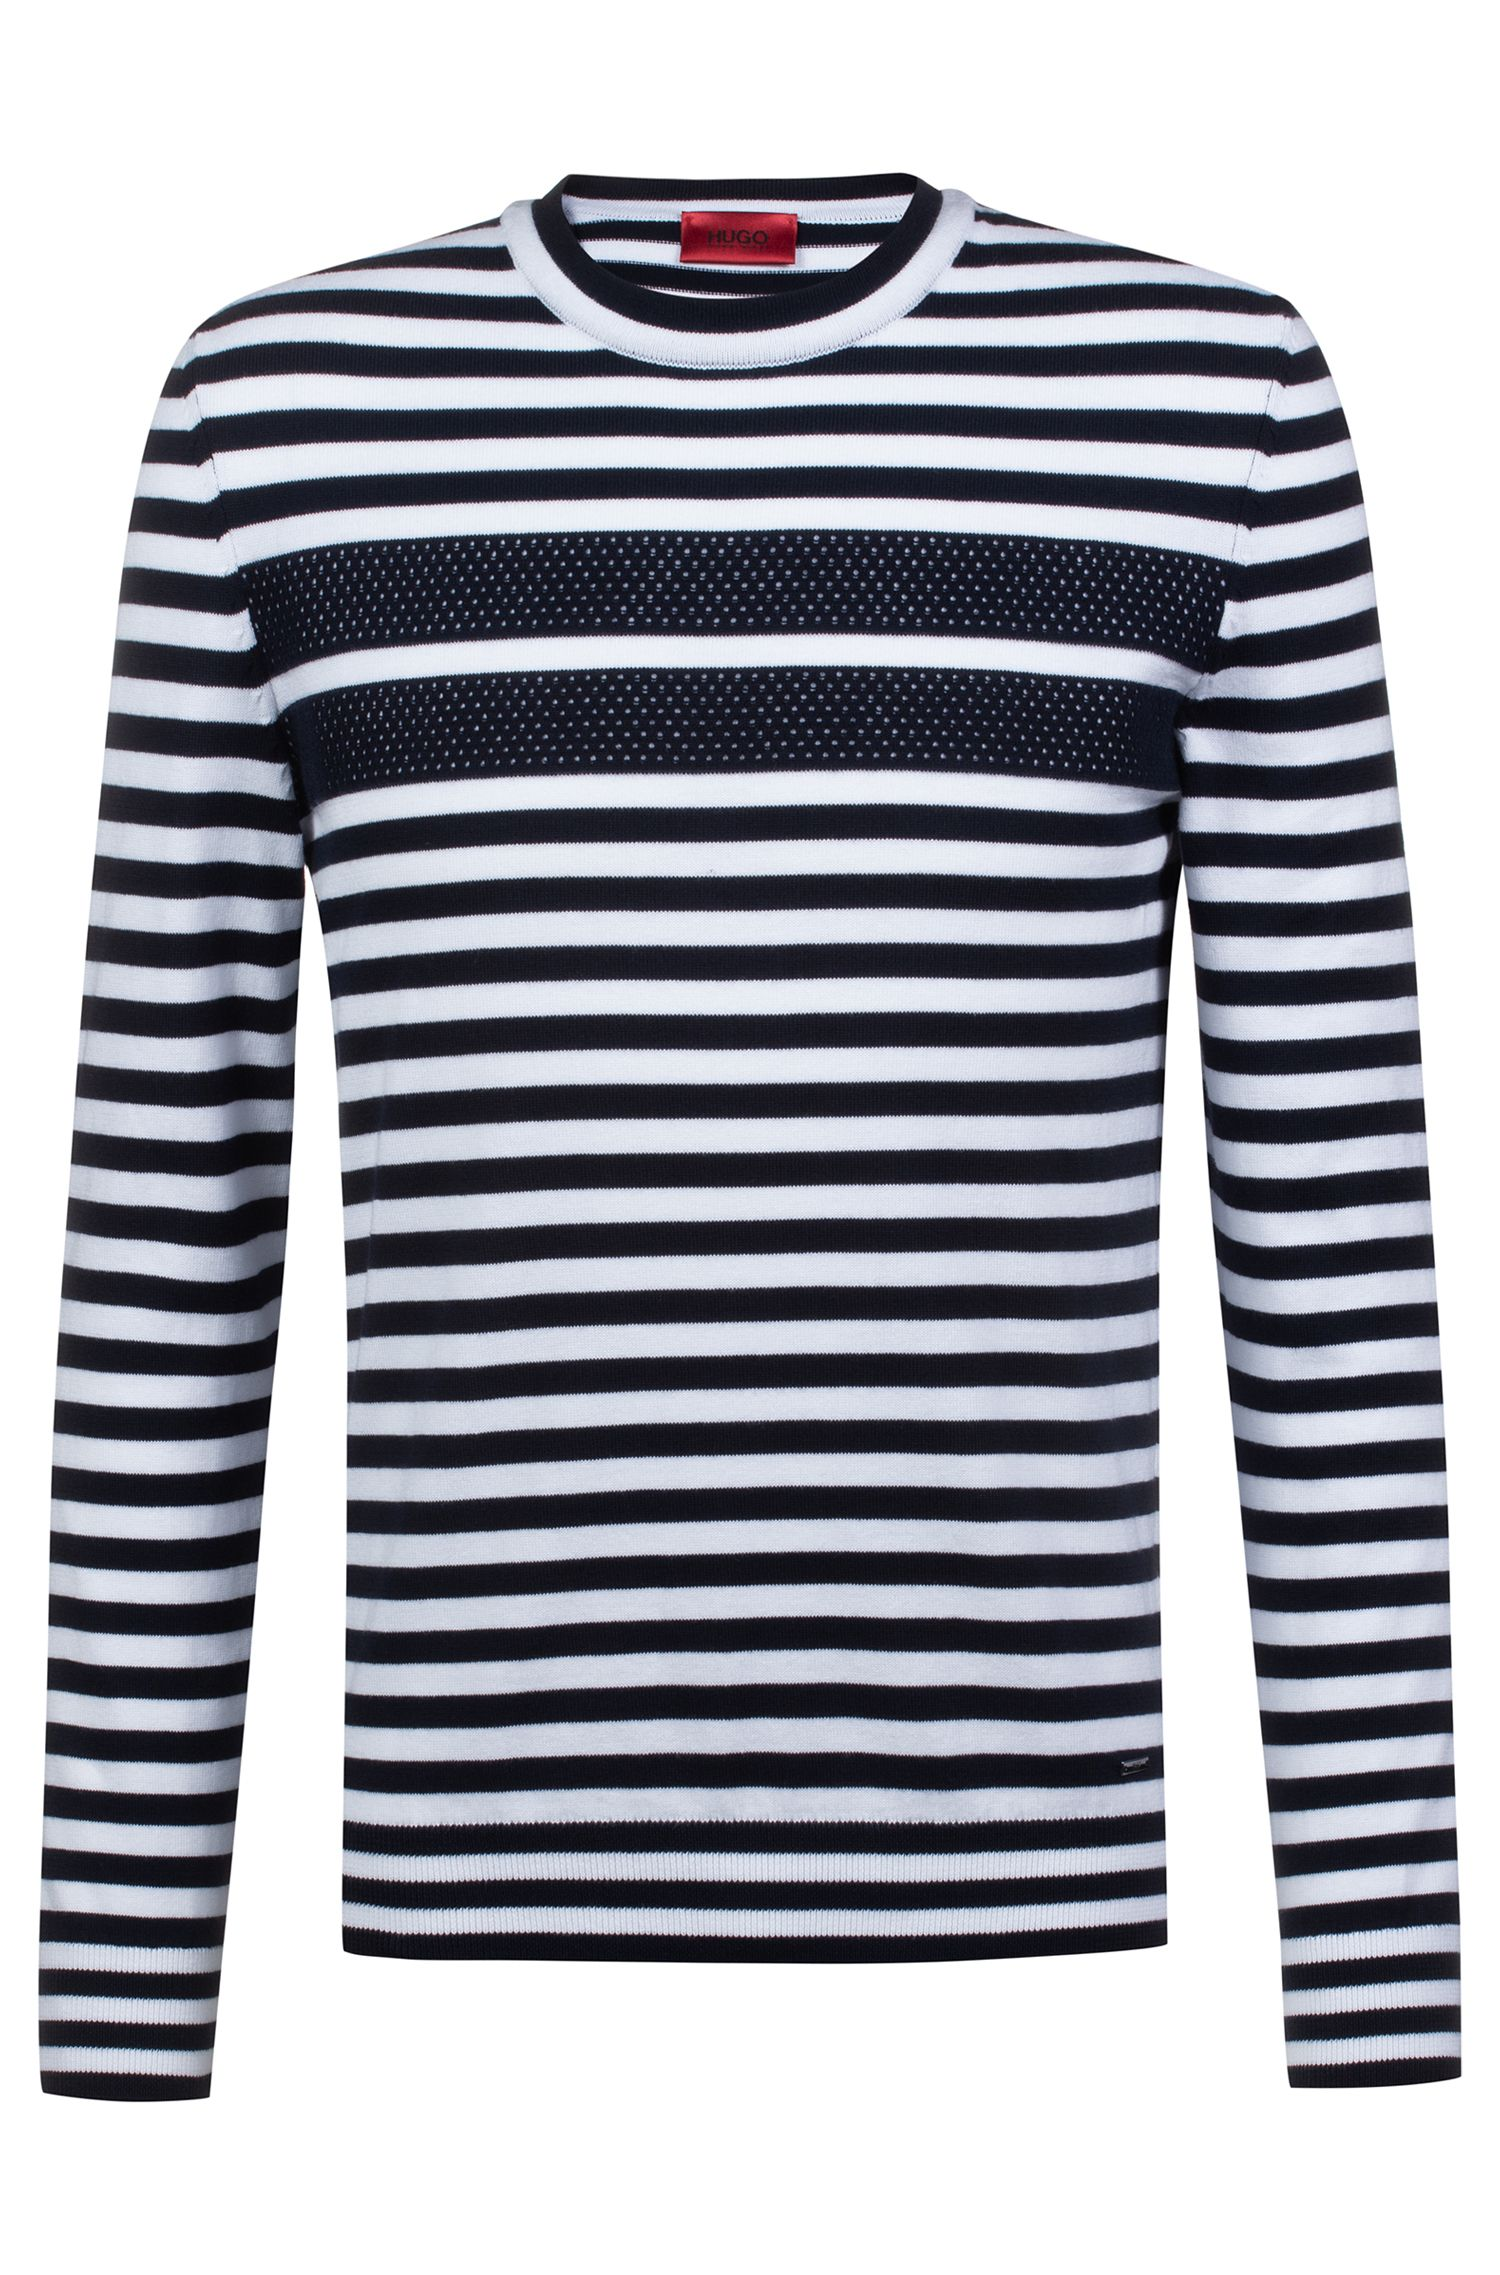 Regular-fit long-sleeved T-shirt in striped cotton, Patterned